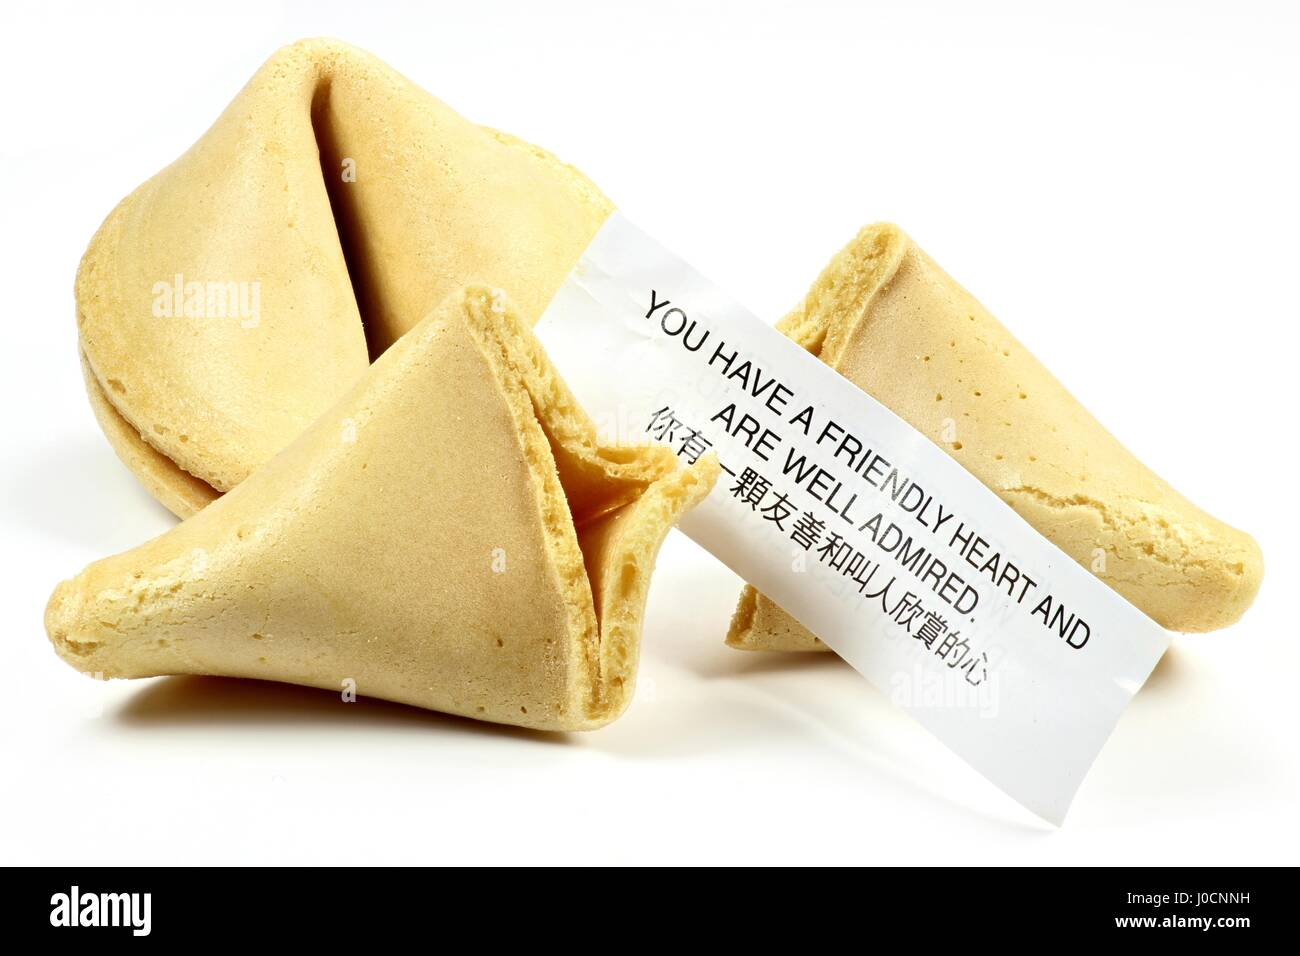 fortune cookies isolated on white background - Stock Image